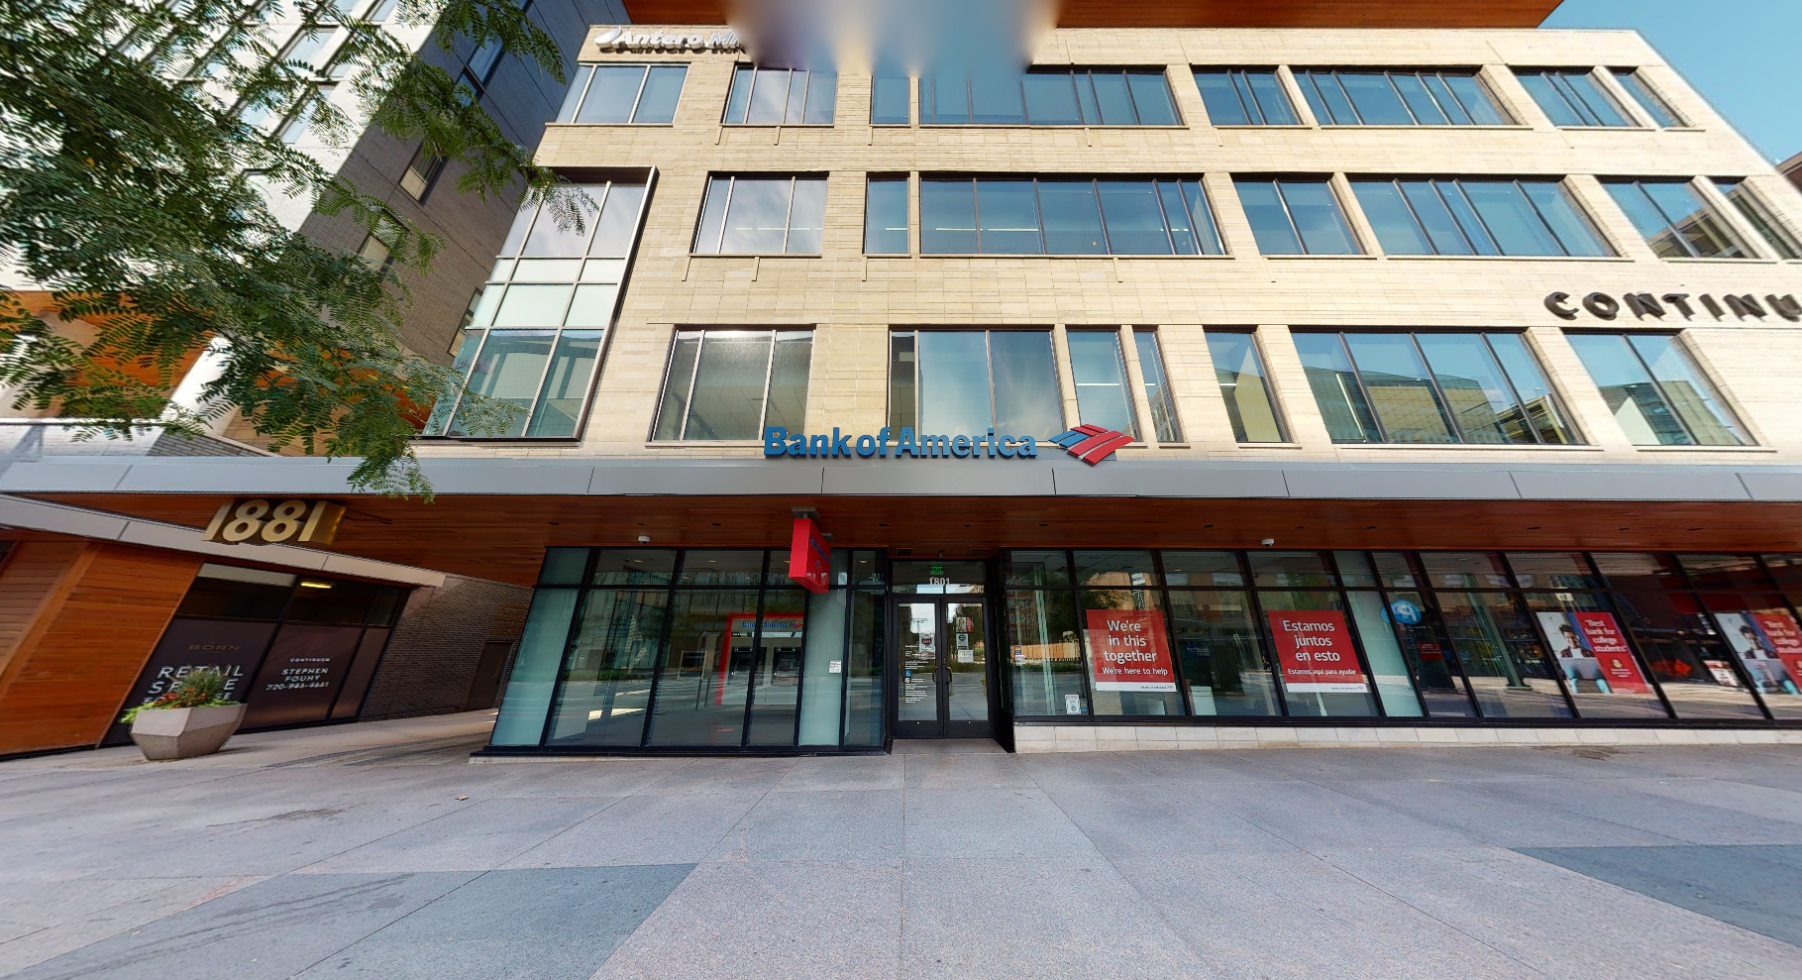 Bank of America financial center with walk-up ATM   1801 16th St, Denver, CO 80202